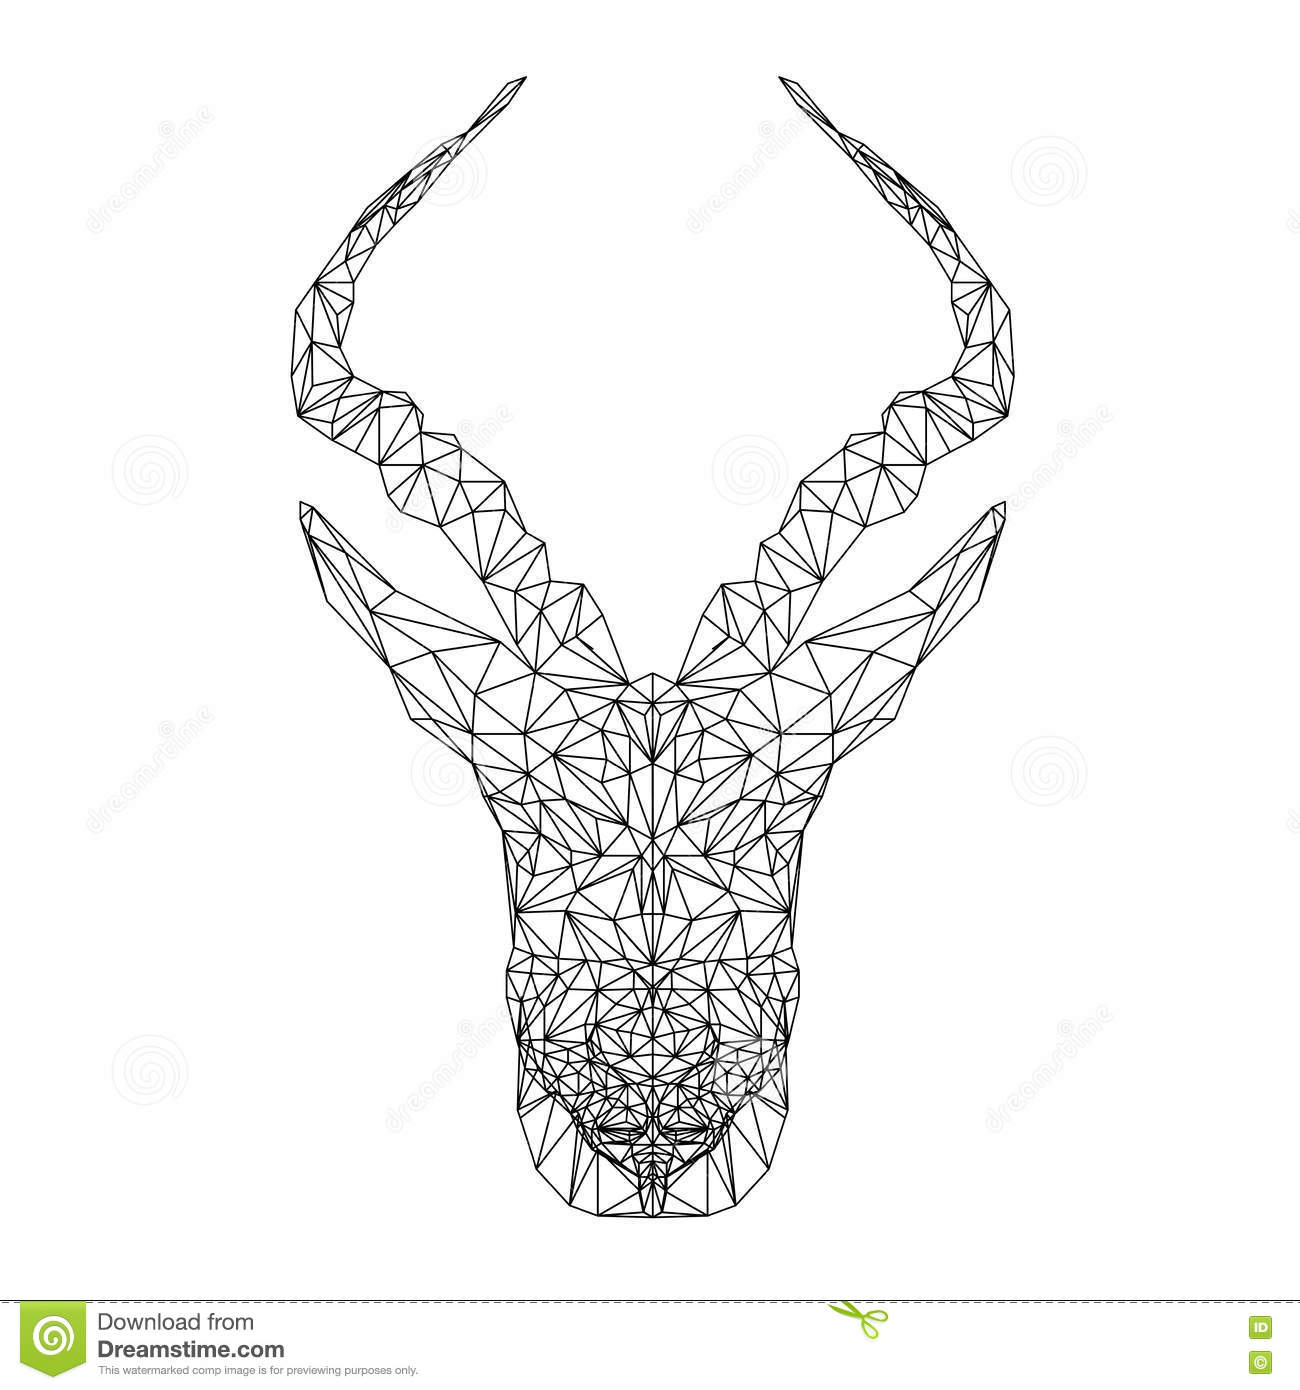 springbok african animal vector antelope illustration for tattoo coloring wallpaper and. Black Bedroom Furniture Sets. Home Design Ideas